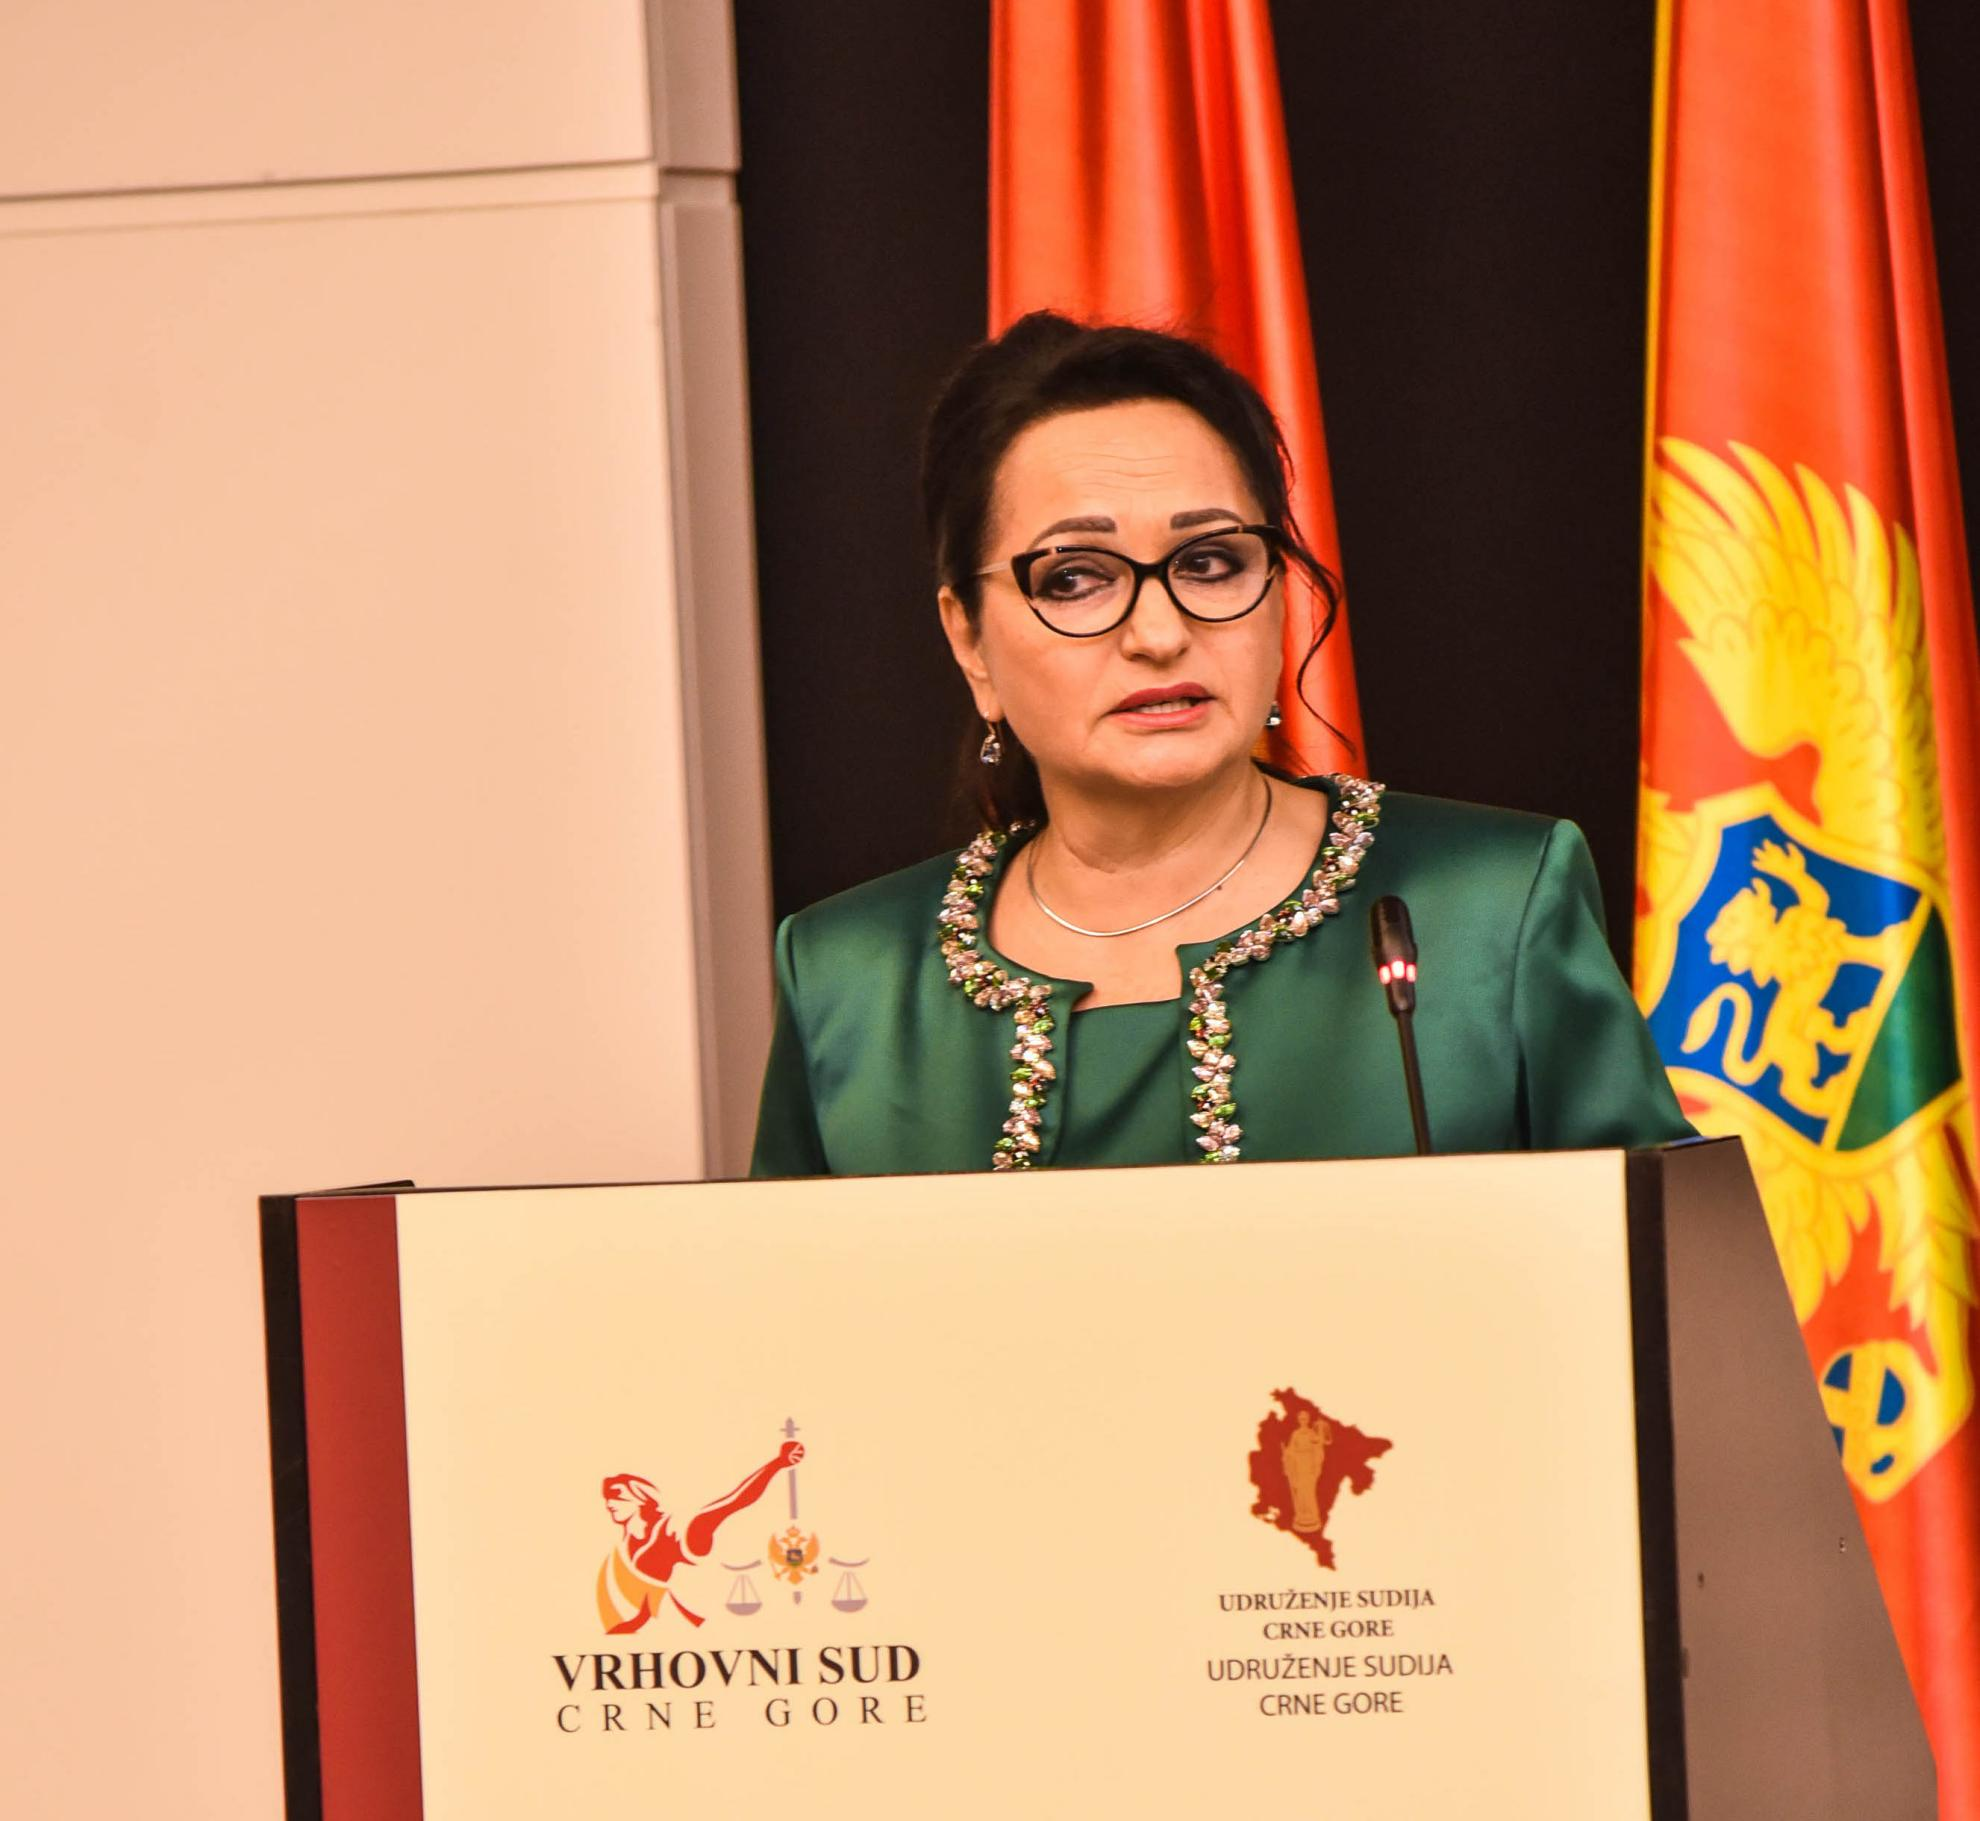 Montenegro Supreme Court Judge Vesna Medenica (CREDIT: Supreme Court of Montenegro)